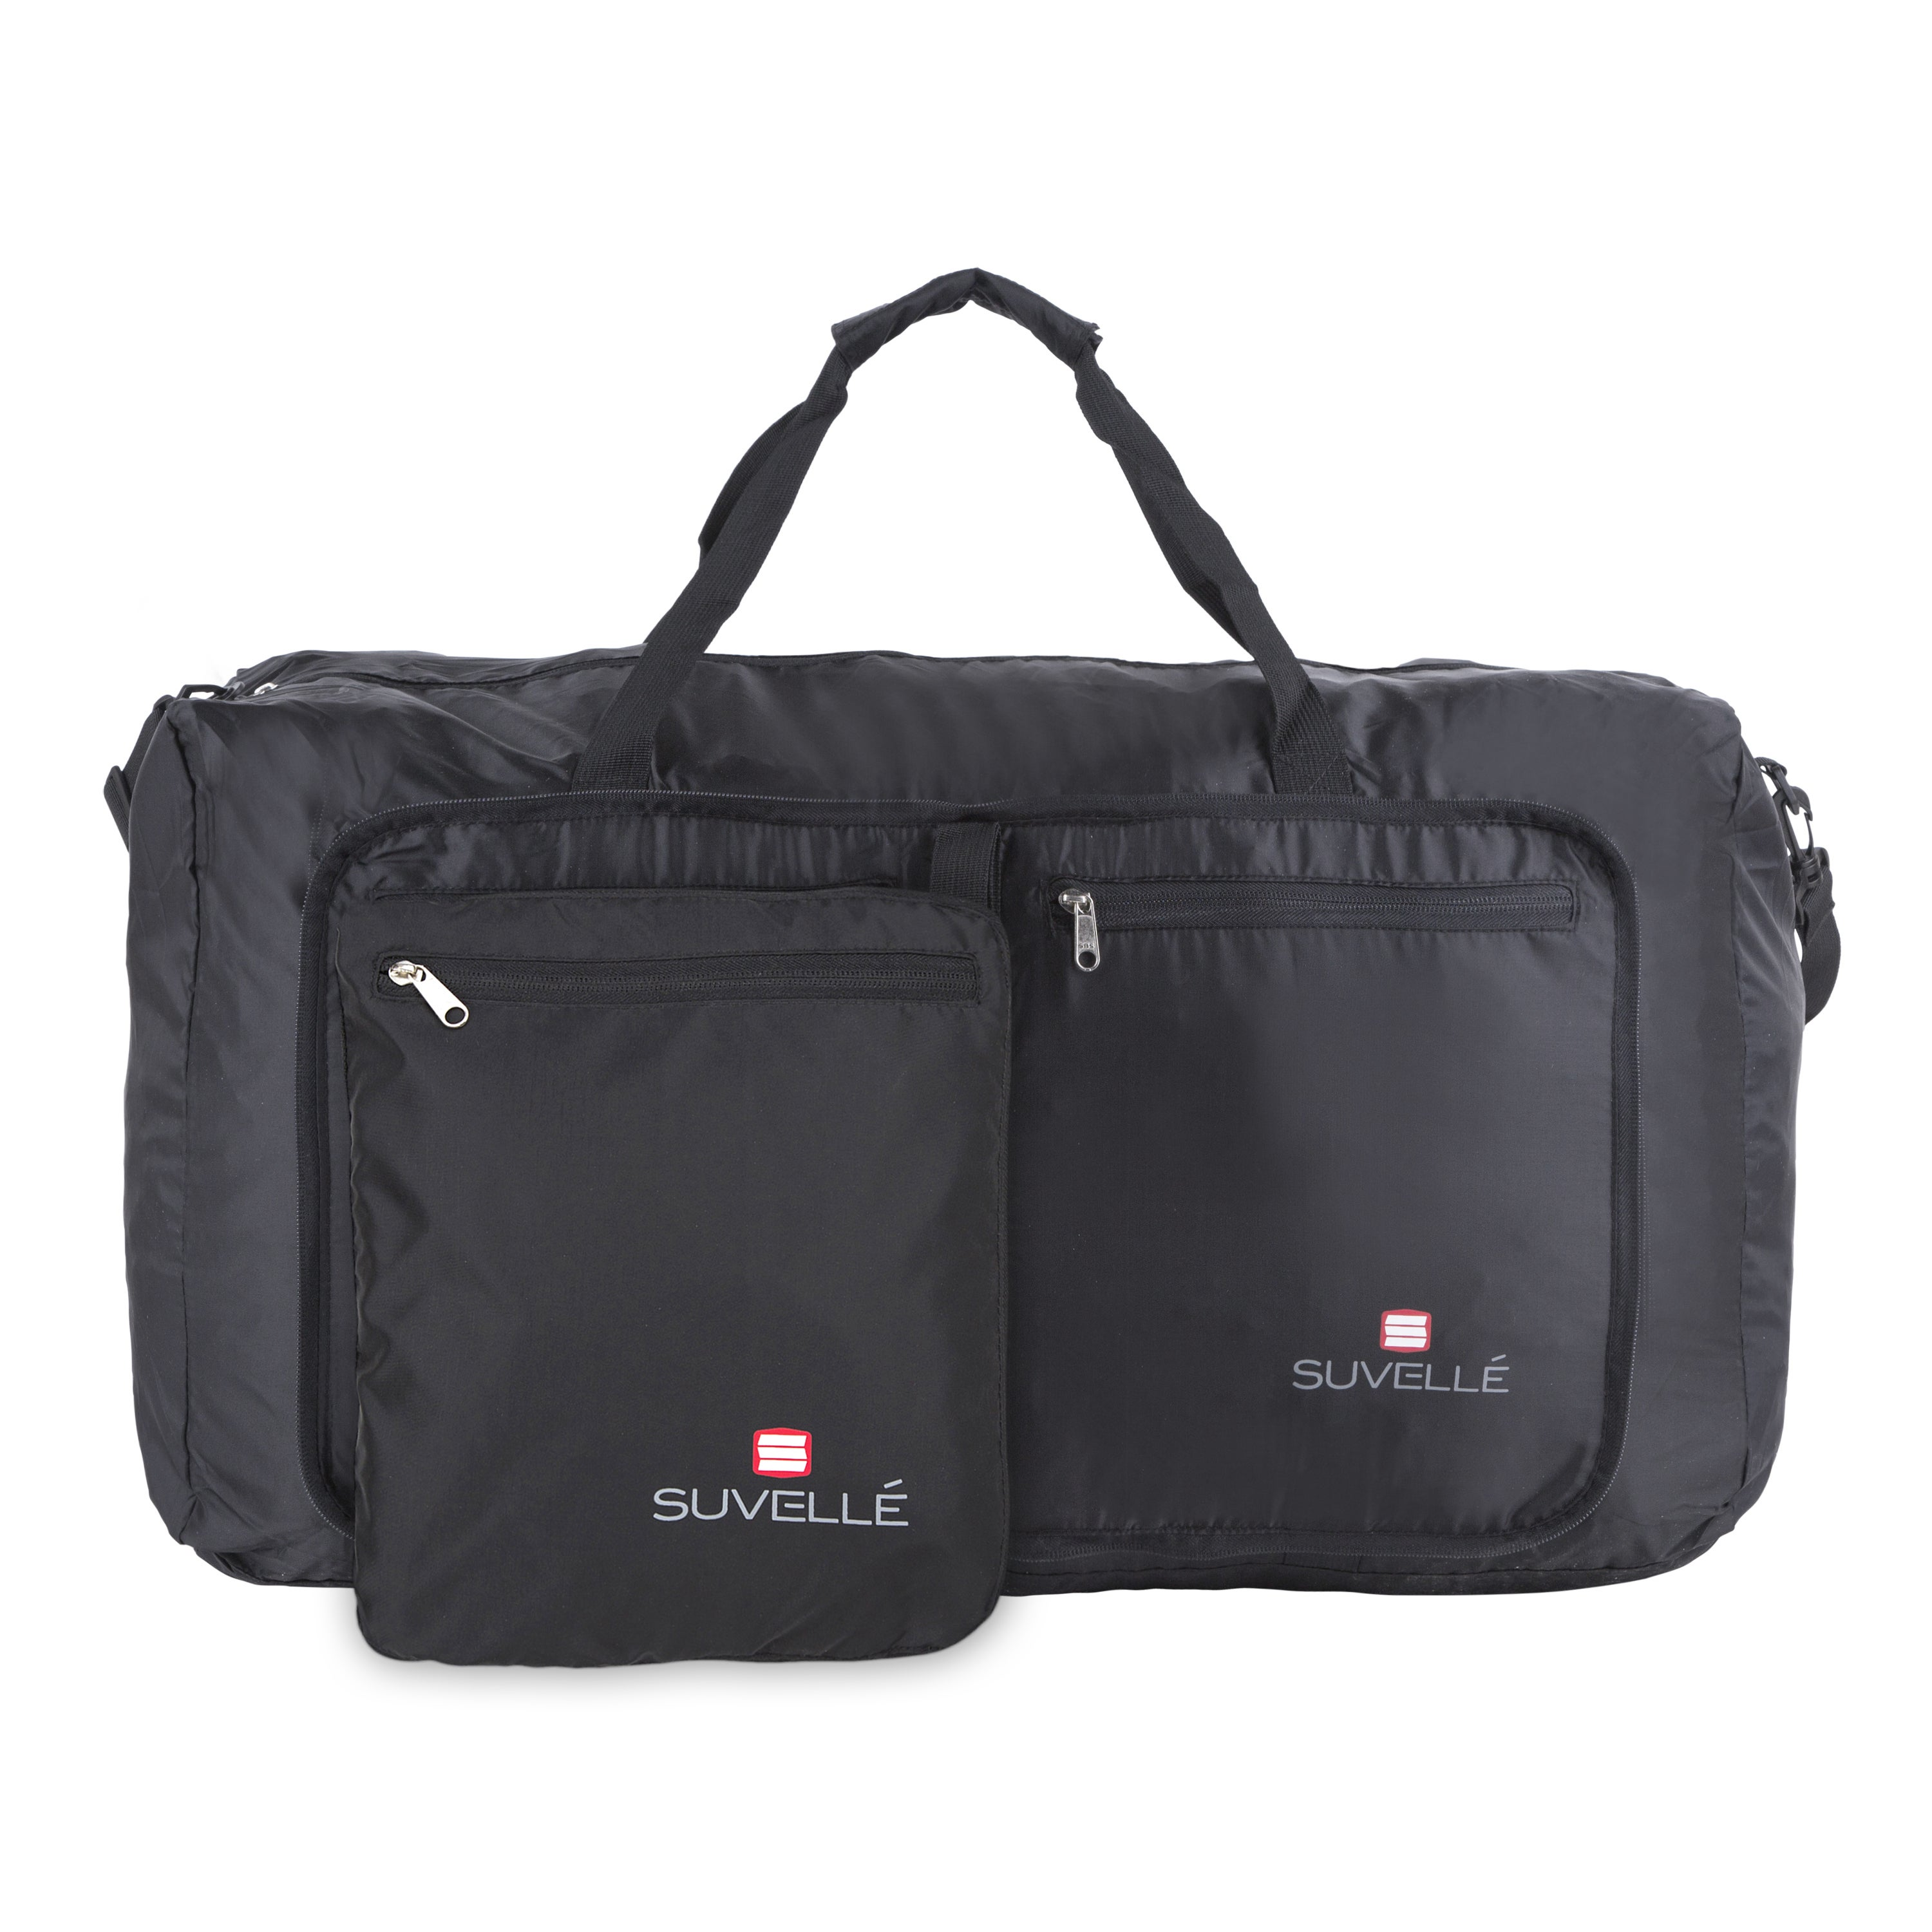 d05808250 Shop Suvelle Travel Duffel Bag 29-inch Foldable Lightweight Duffle Bag - On  Sale - Free Shipping On Orders Over $45 - Overstock - 9765357